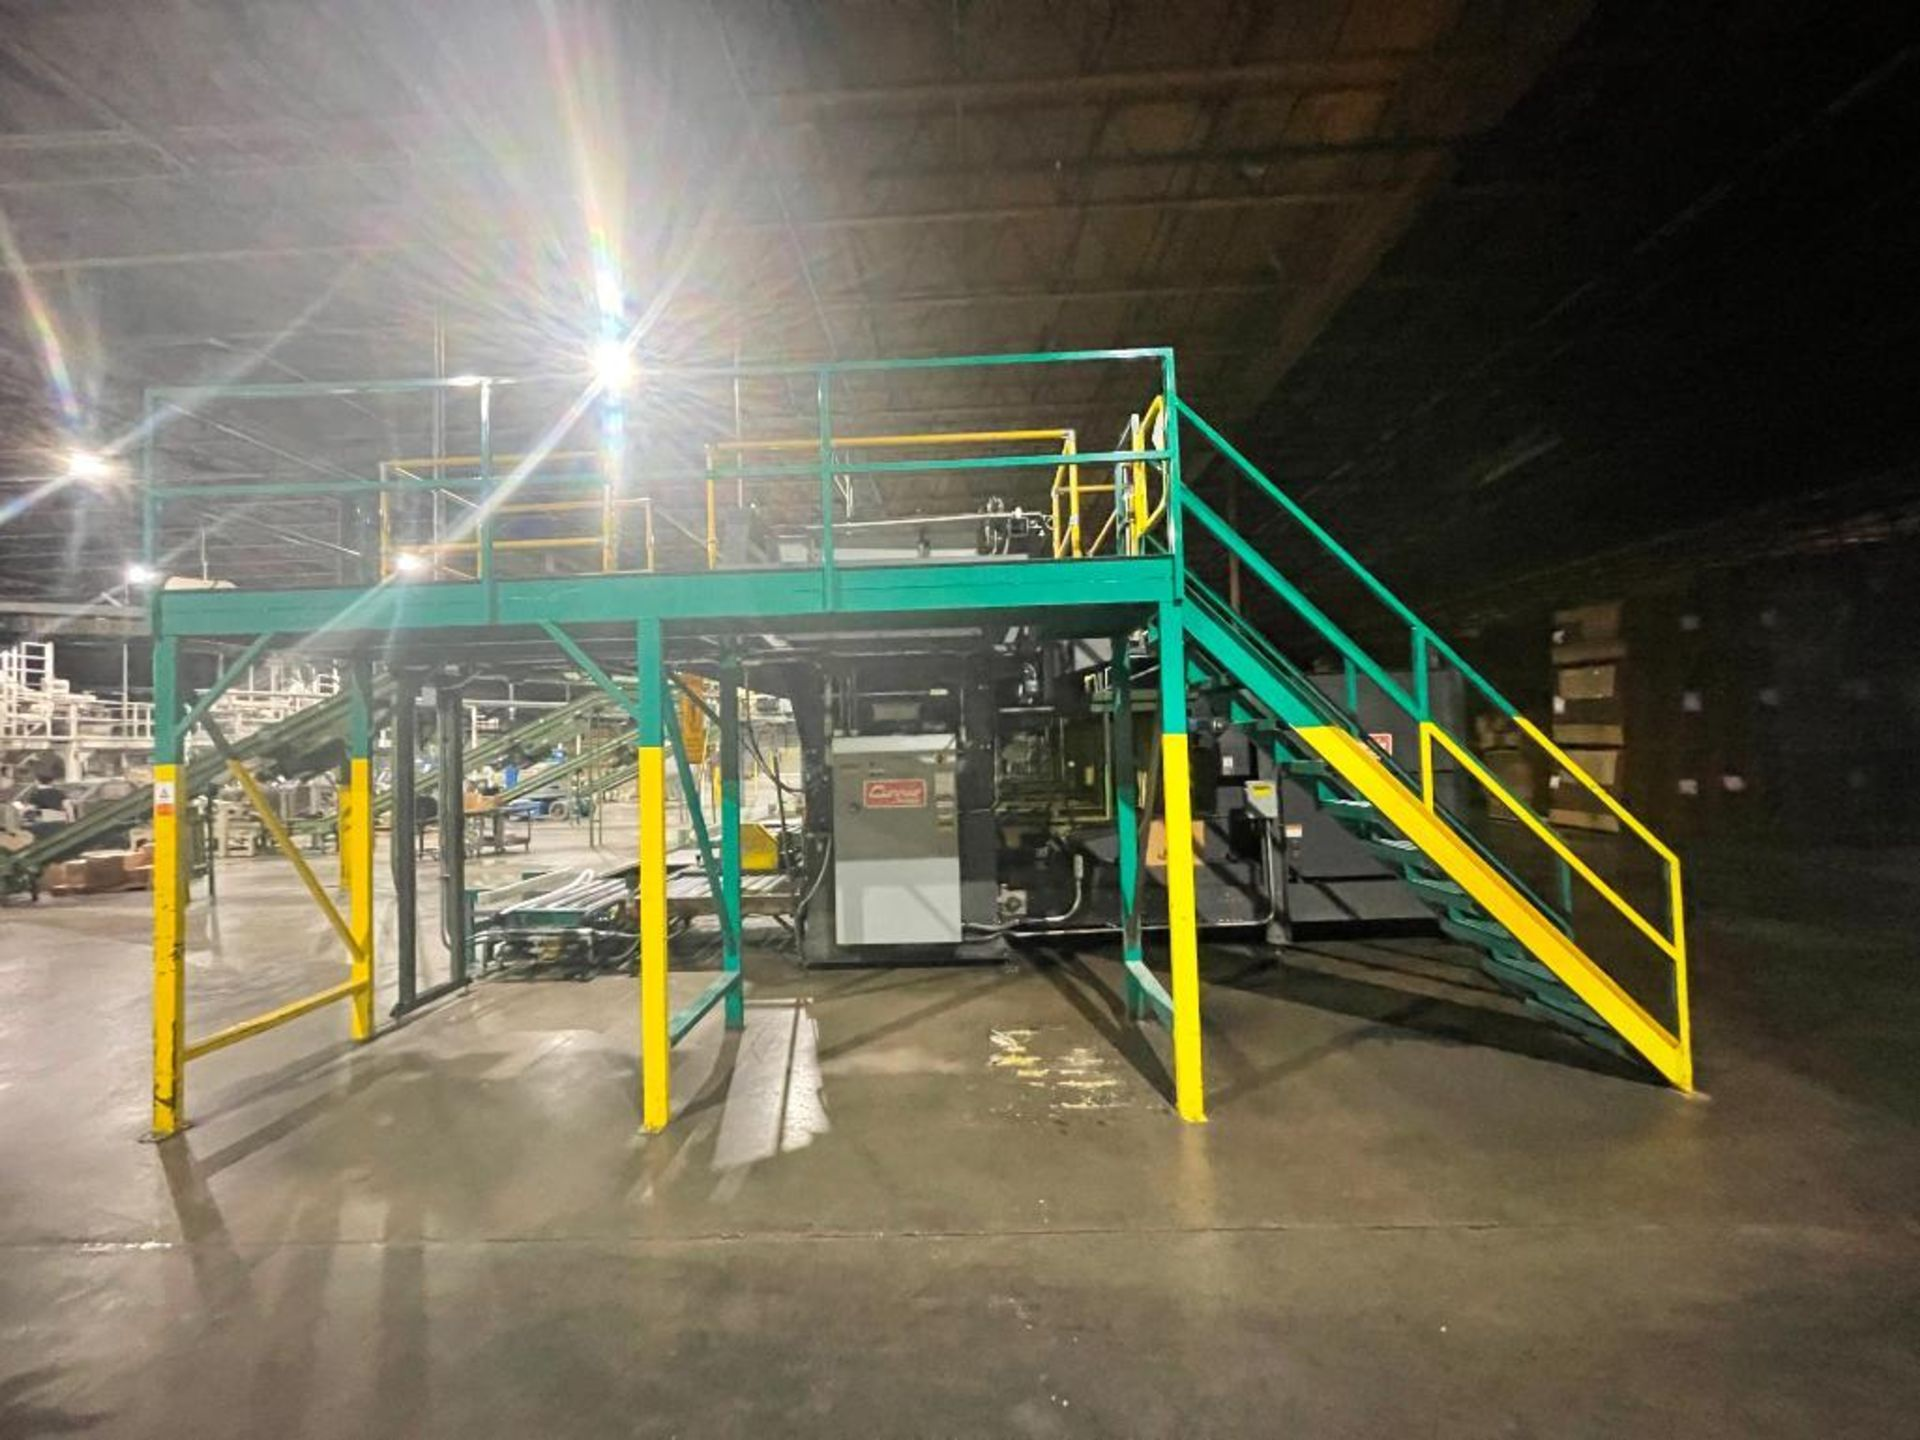 2008 Currie top to bottom palletizer, model PALLETIZER, sn 3348 - Image 2 of 28